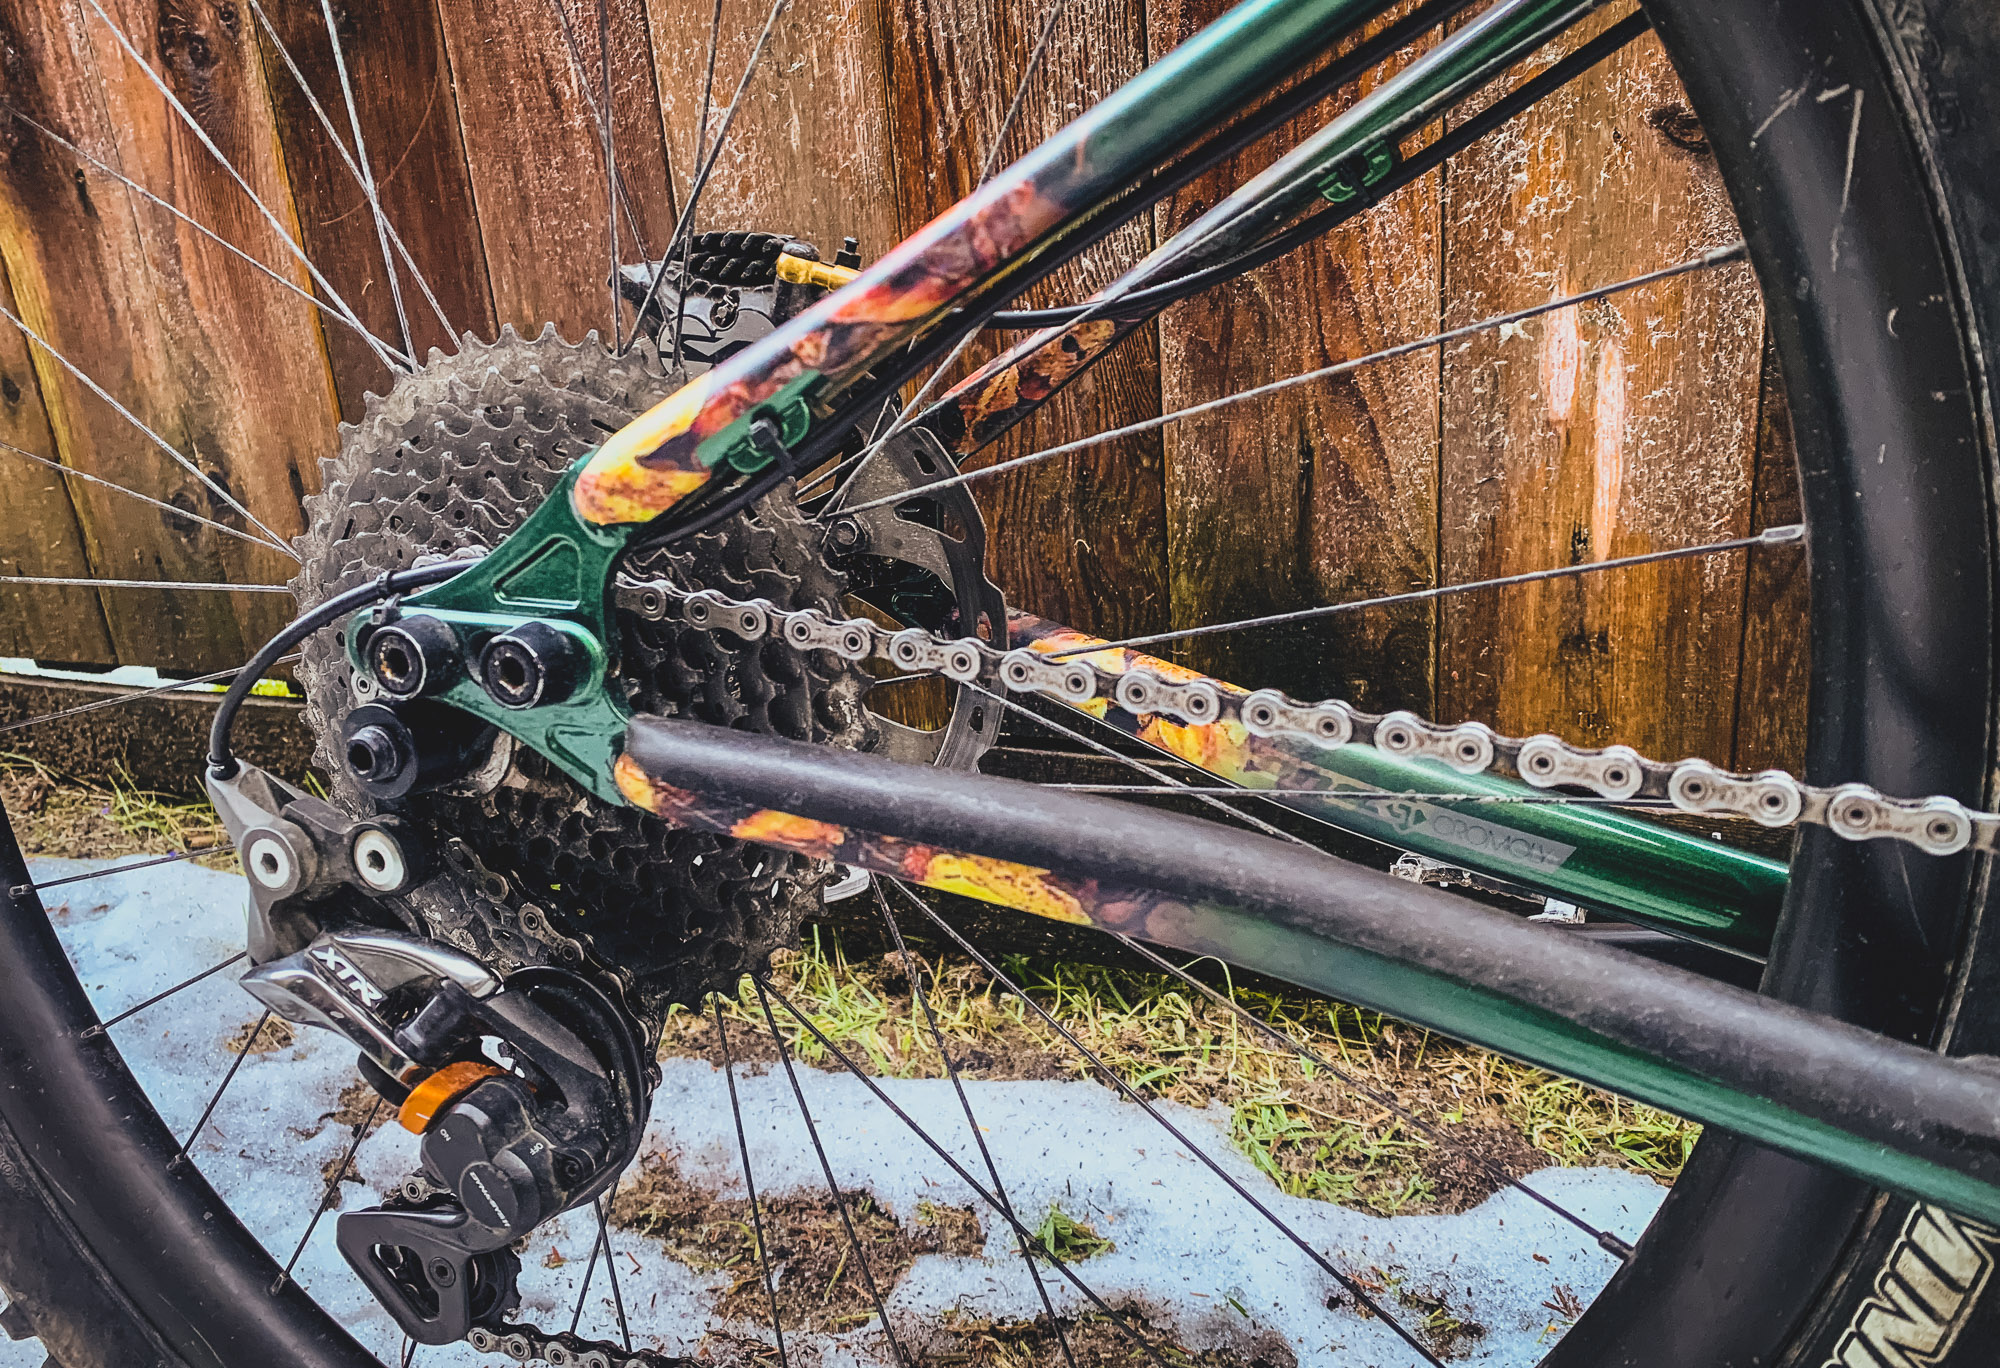 18b4d85134c ... Matt kicks that off with a set of Light Bike carbon rims laced to a set  of Industry 9 Torch hubs. The fork is a 130m Pike with One Up's tool-less  axle.